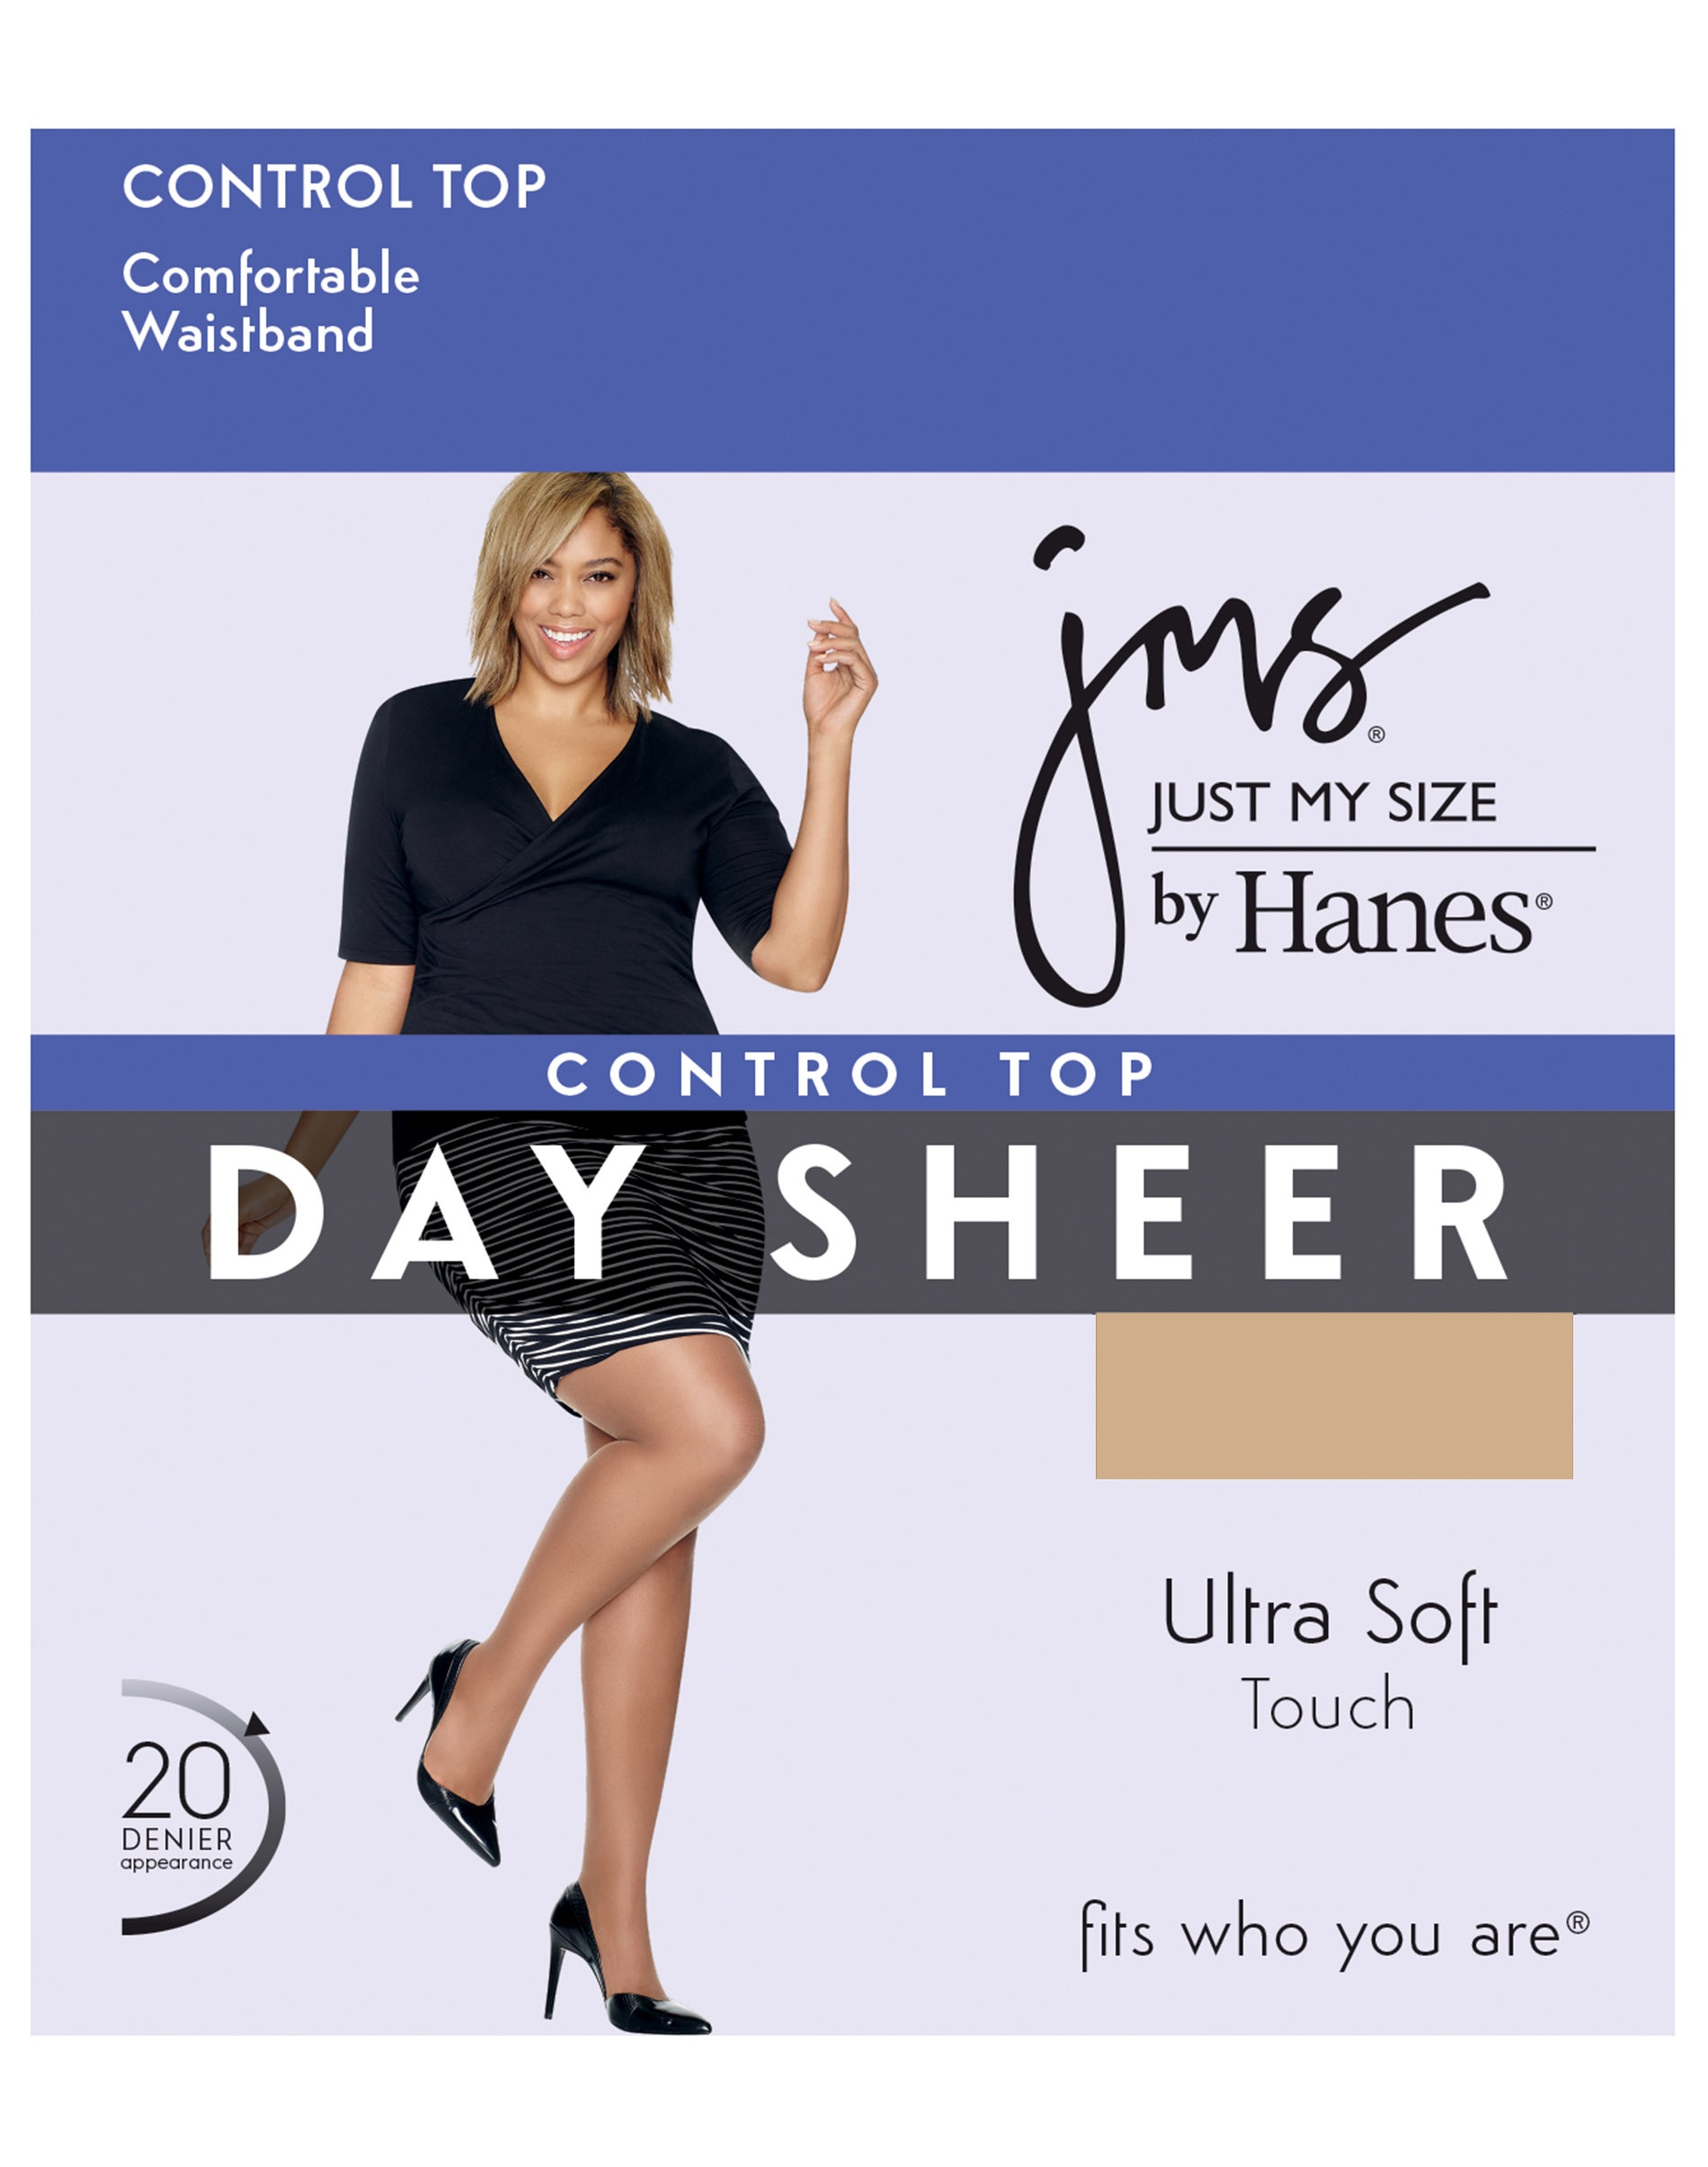 Just My Size Hanes JMS Plus Blackout Tights Stocking Lace Thigh High 1X 2X 3X 4X